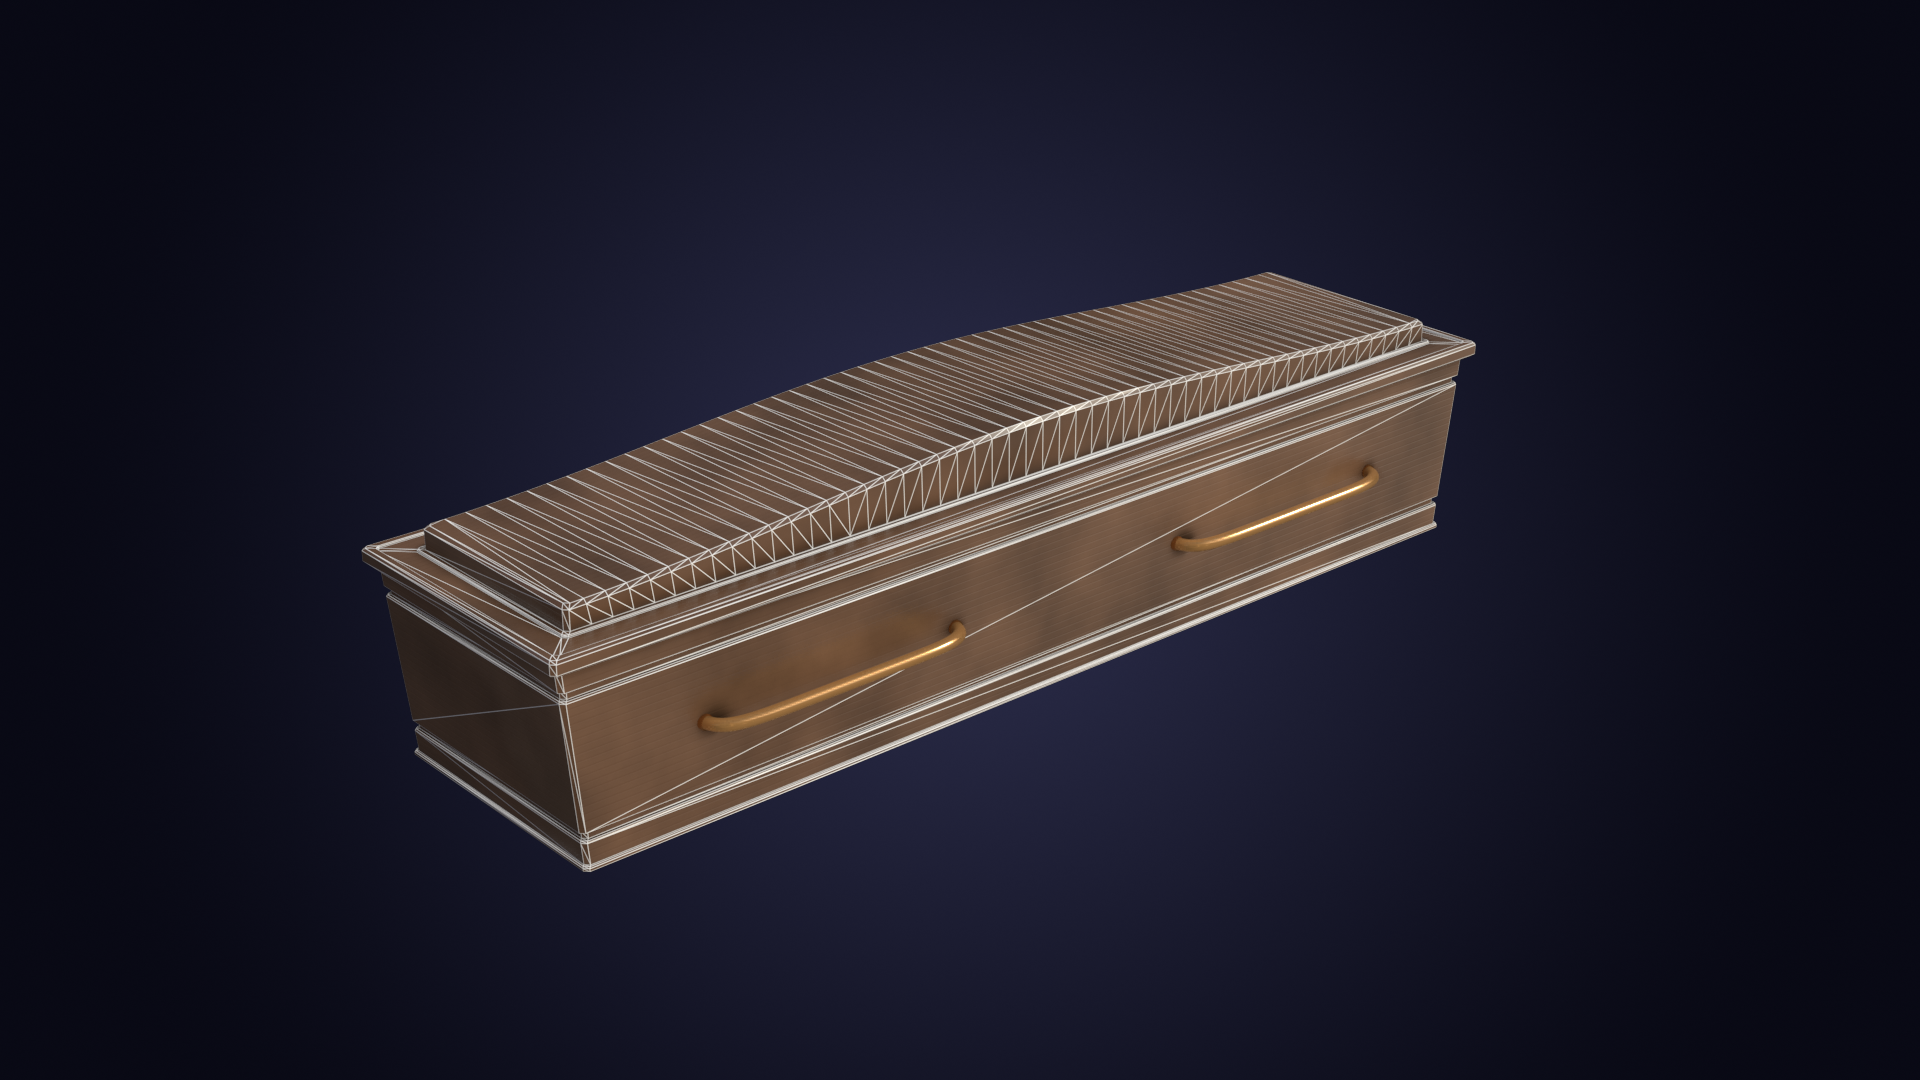 Wooden Coffin preview image 4